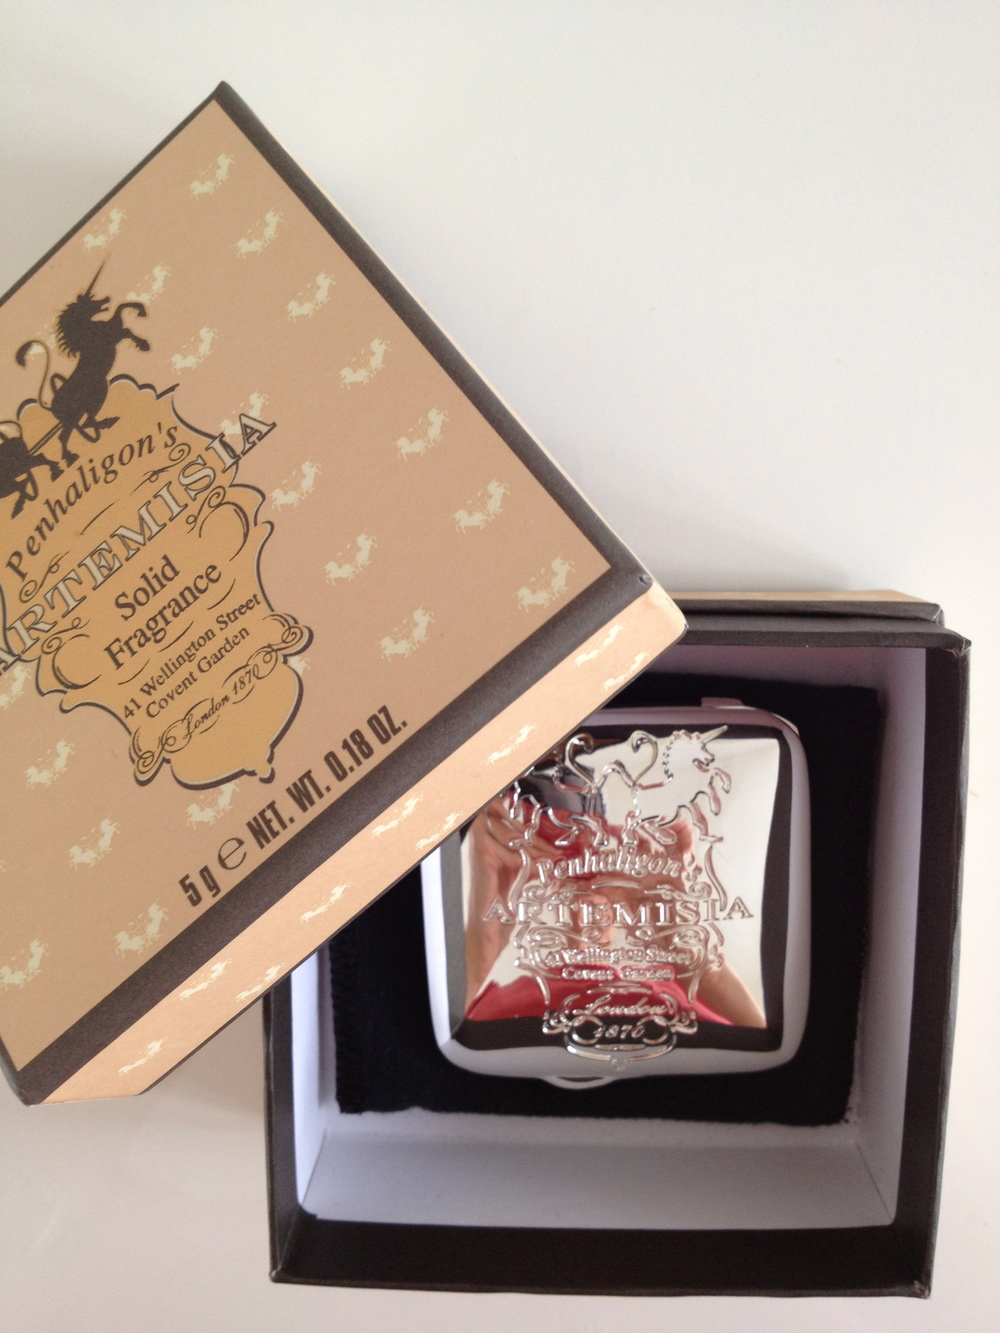 Artemisia solid perfume in silver compact